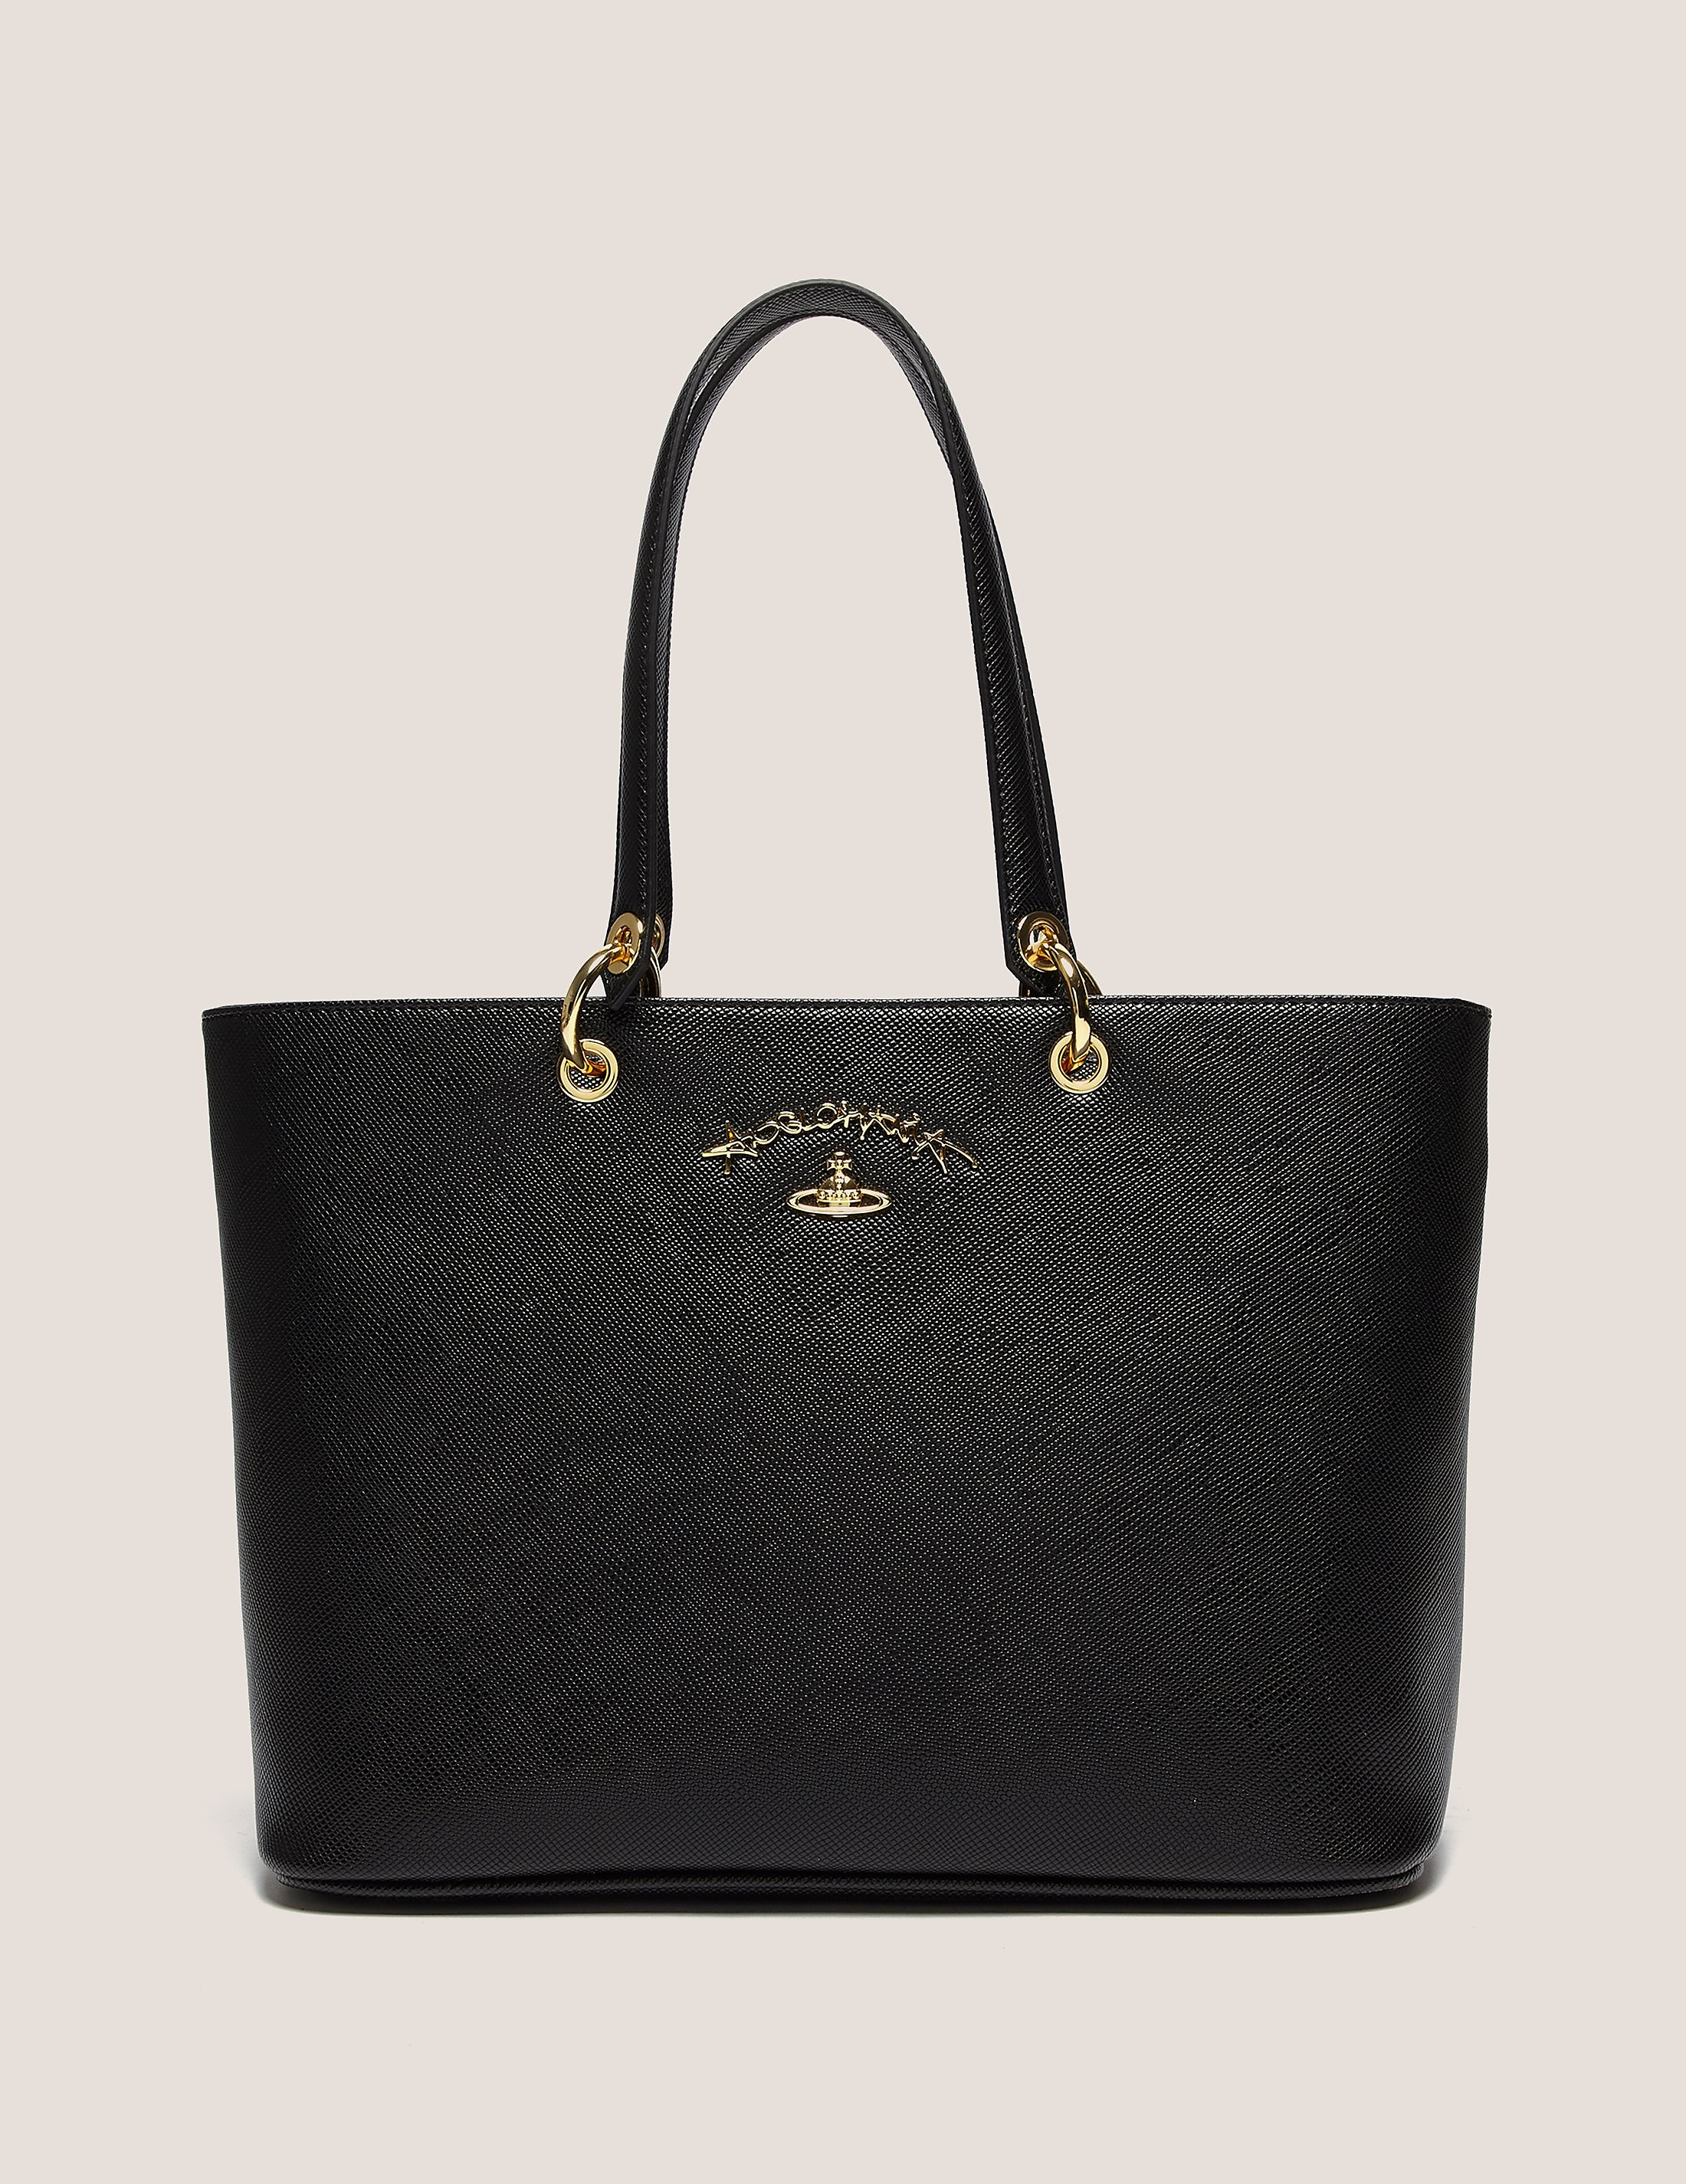 Vivienne Westwood Anglomania Divina Shopper